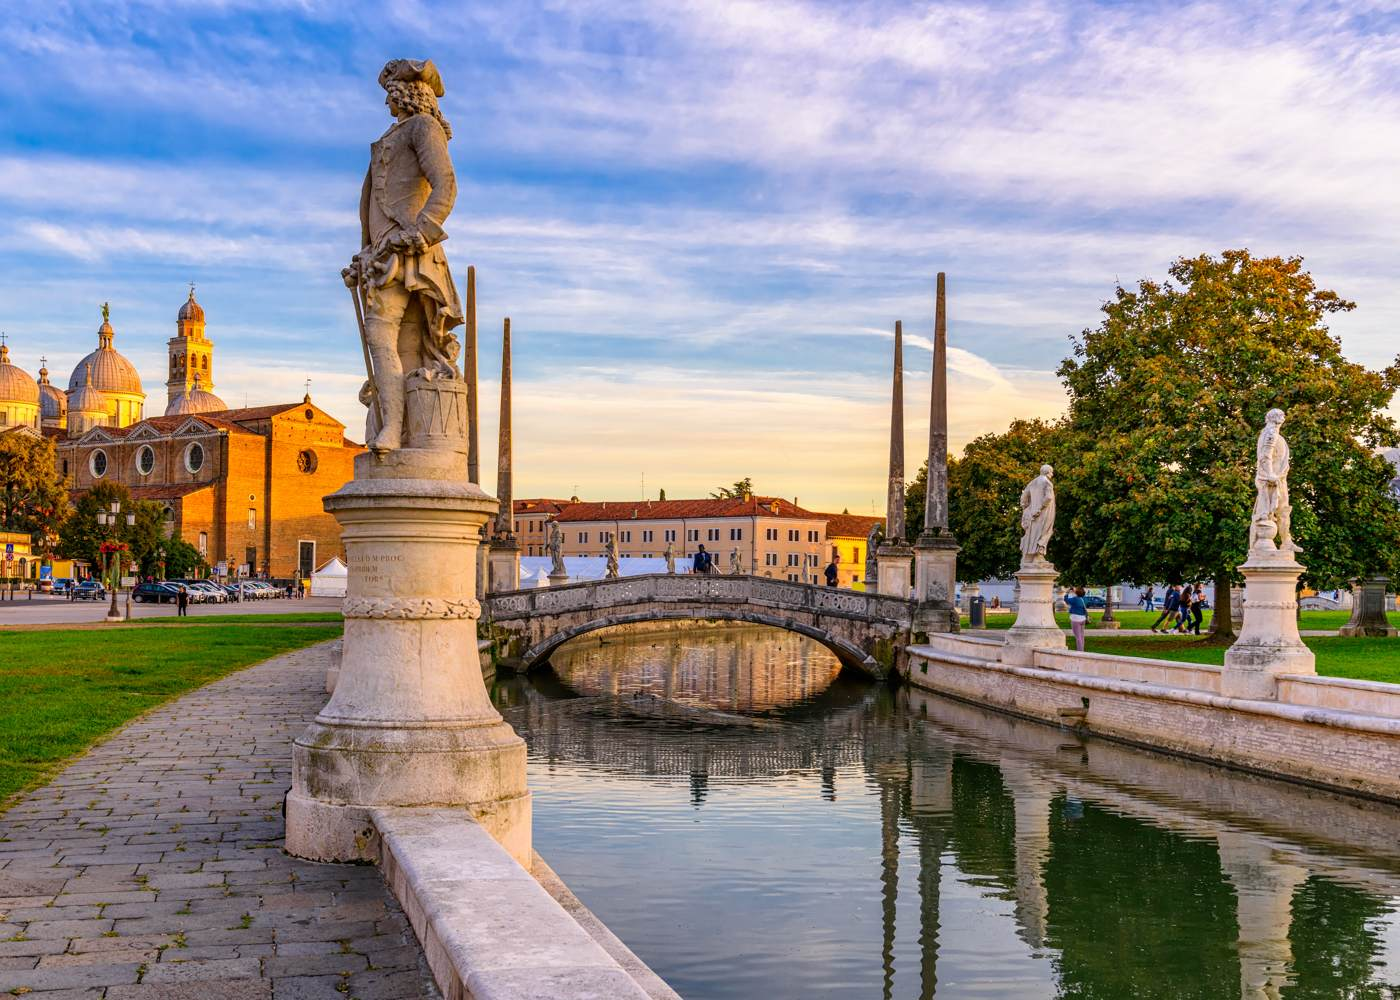 Canal with statues on square Prato della Valle and Basilica Santa Giustina